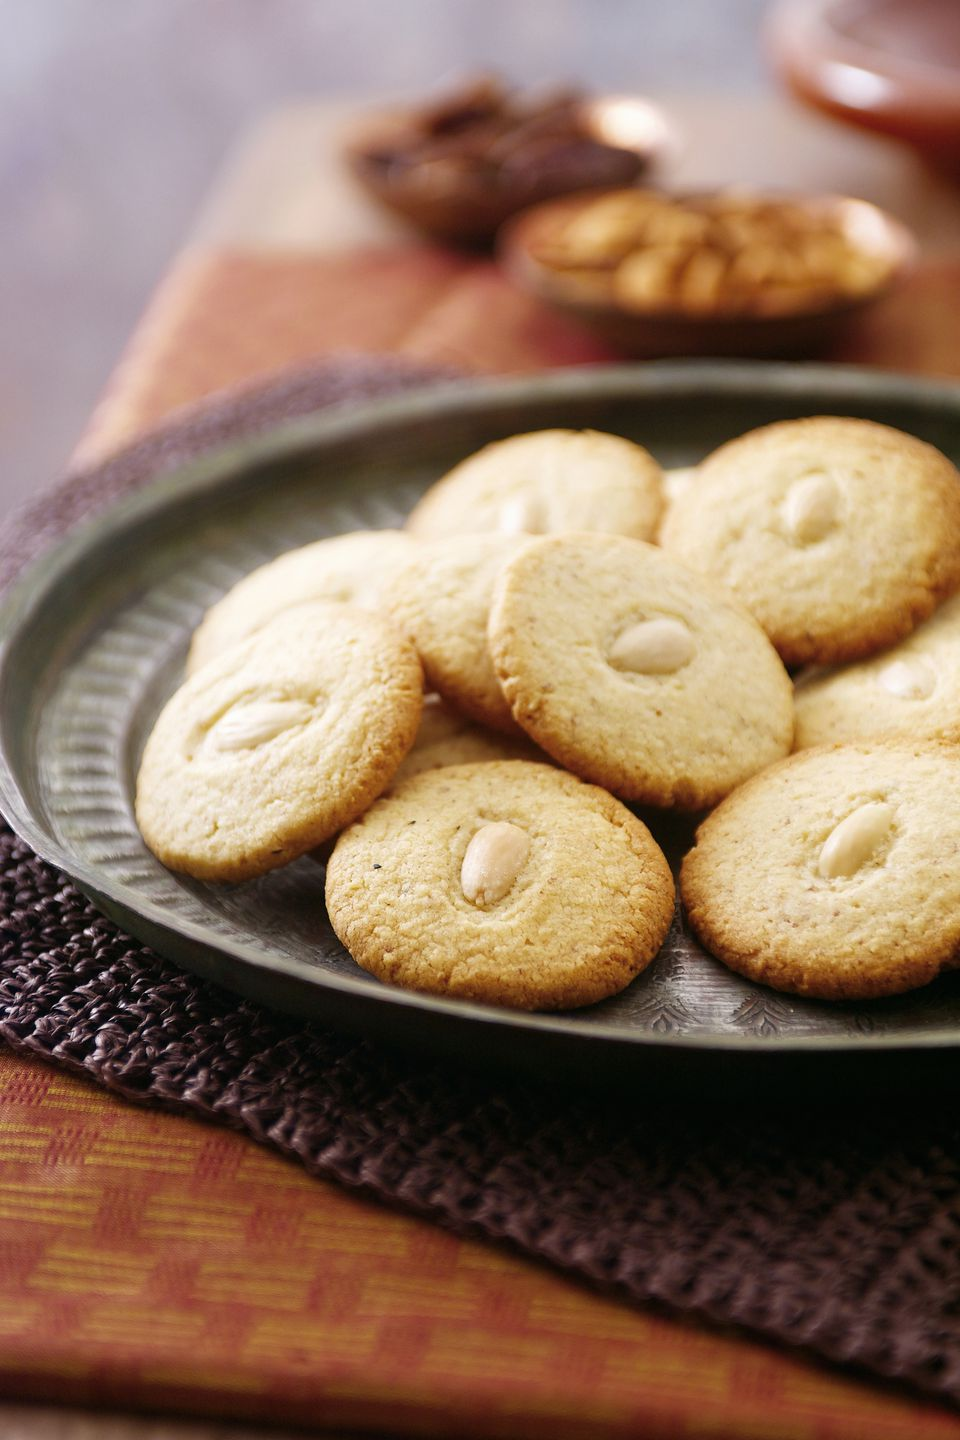 Moroccan almond biscuit, close-up